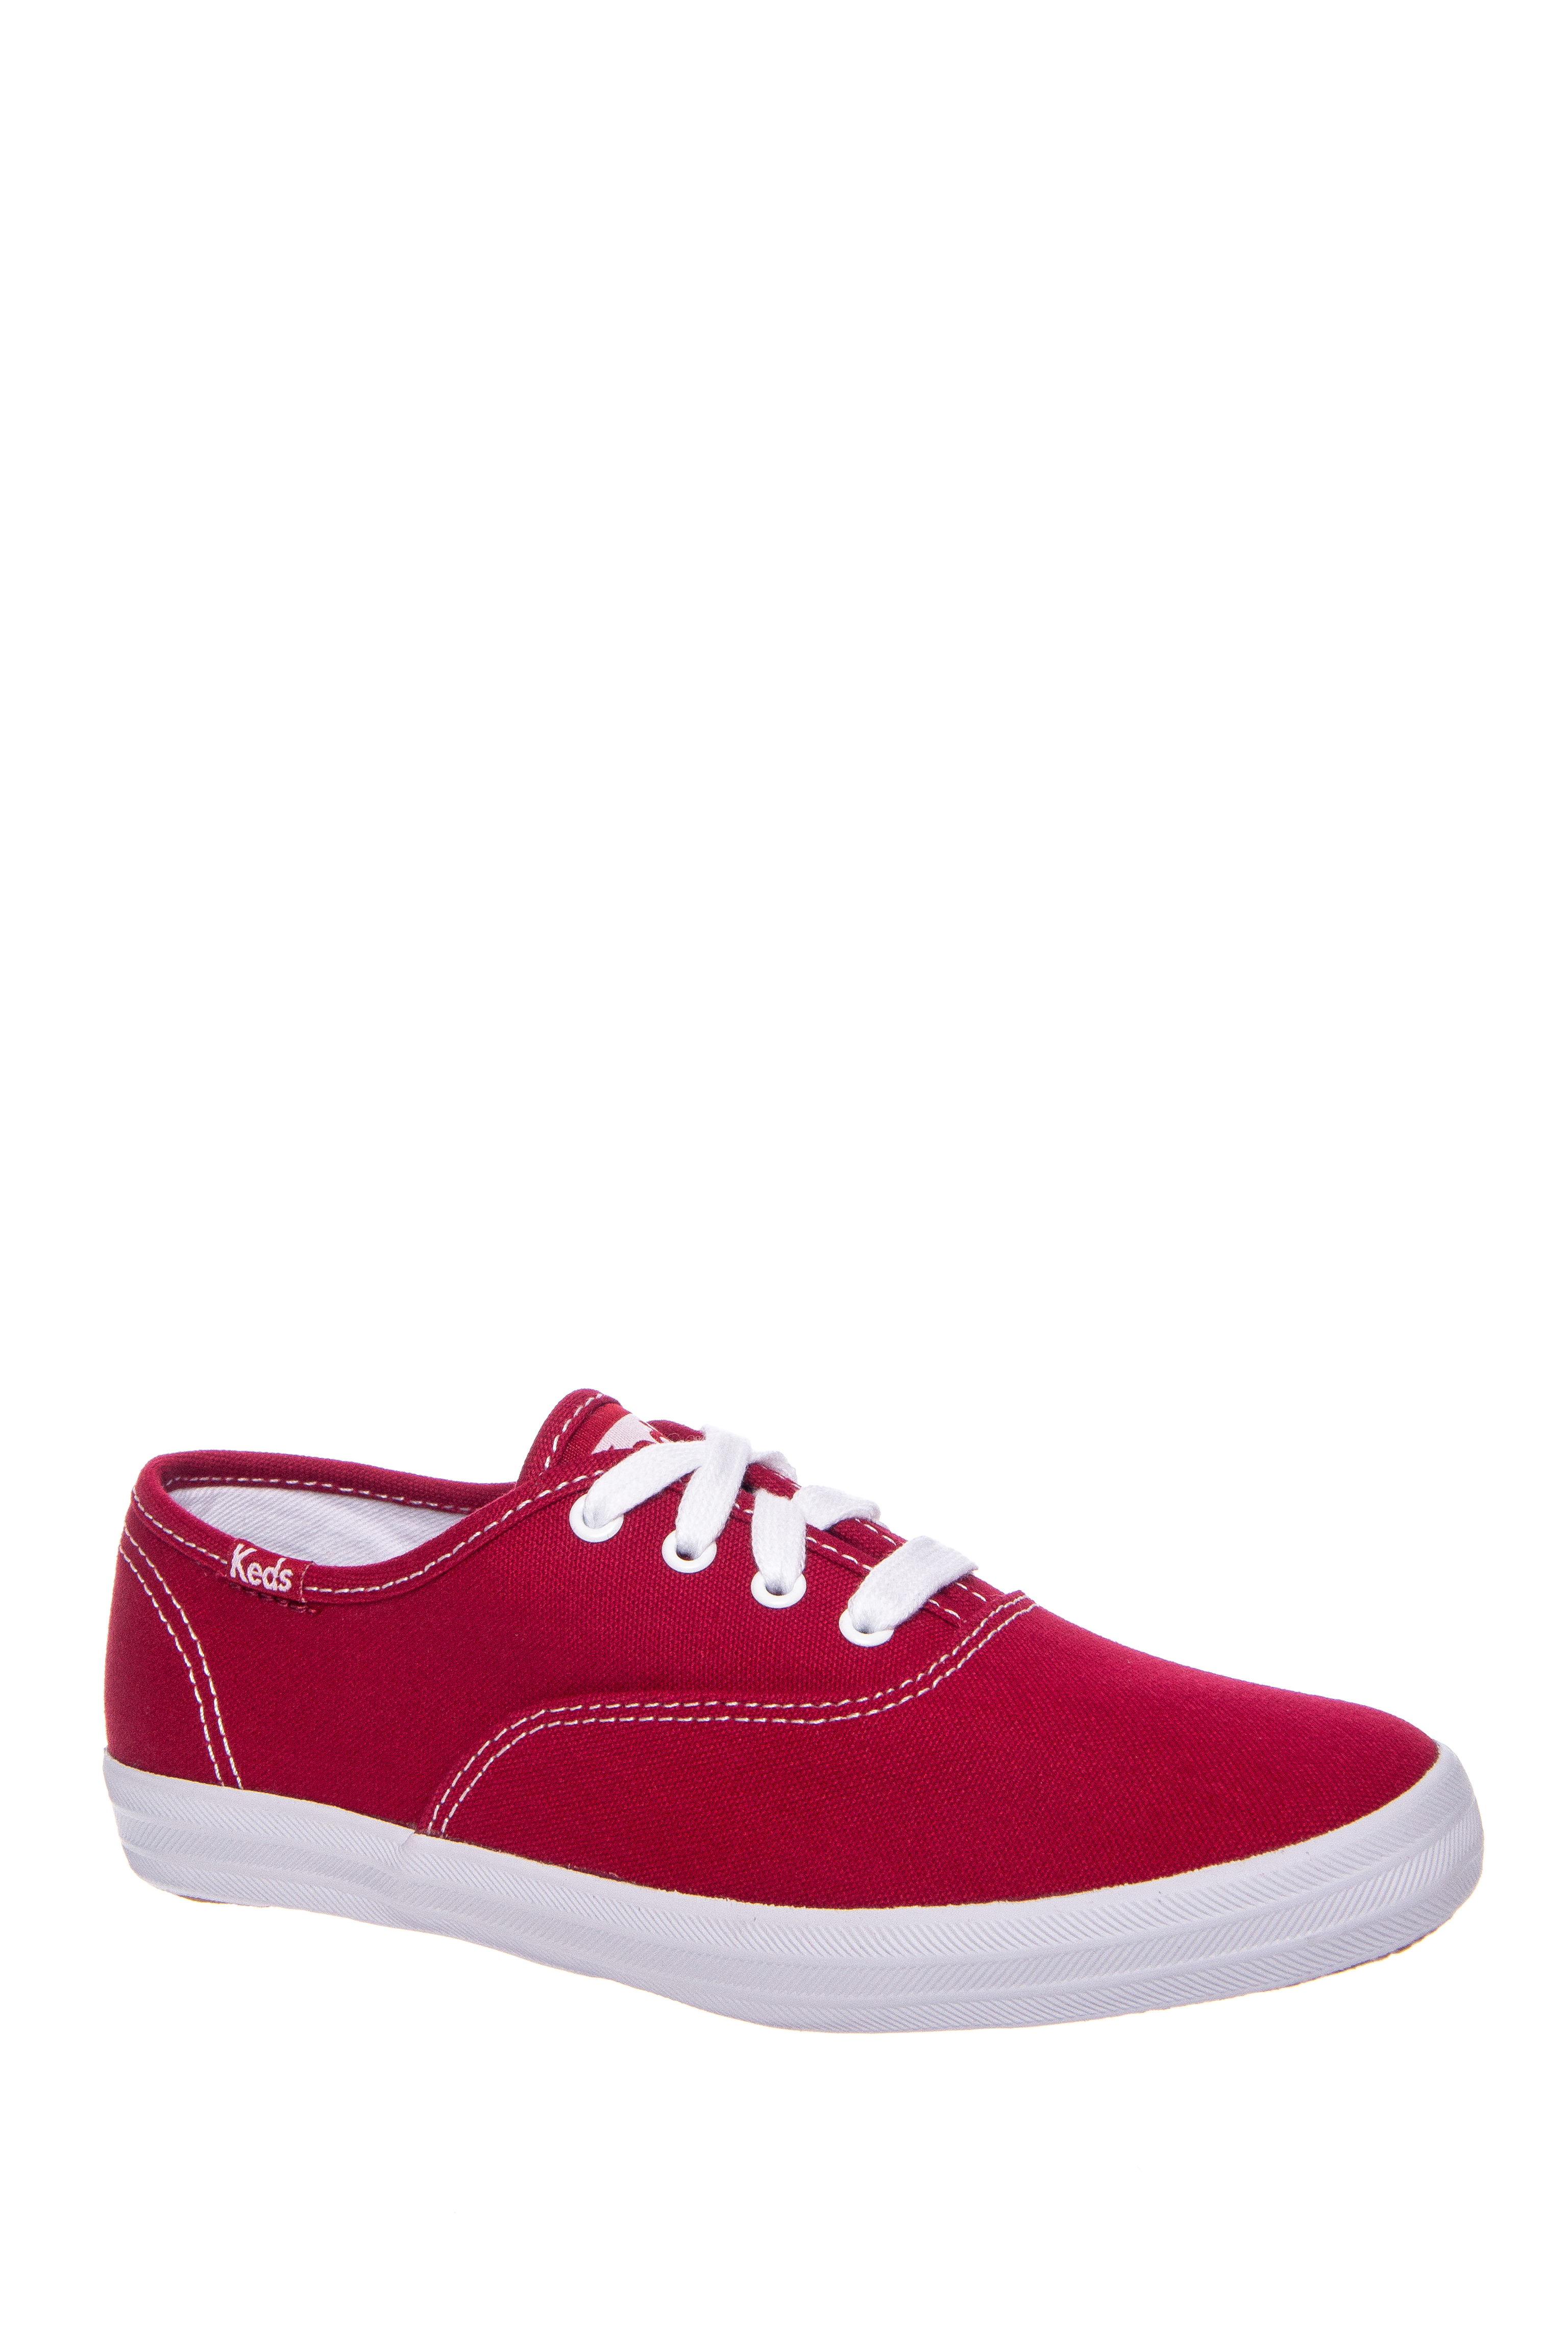 KEDS Champion Low Top Oxford - Red